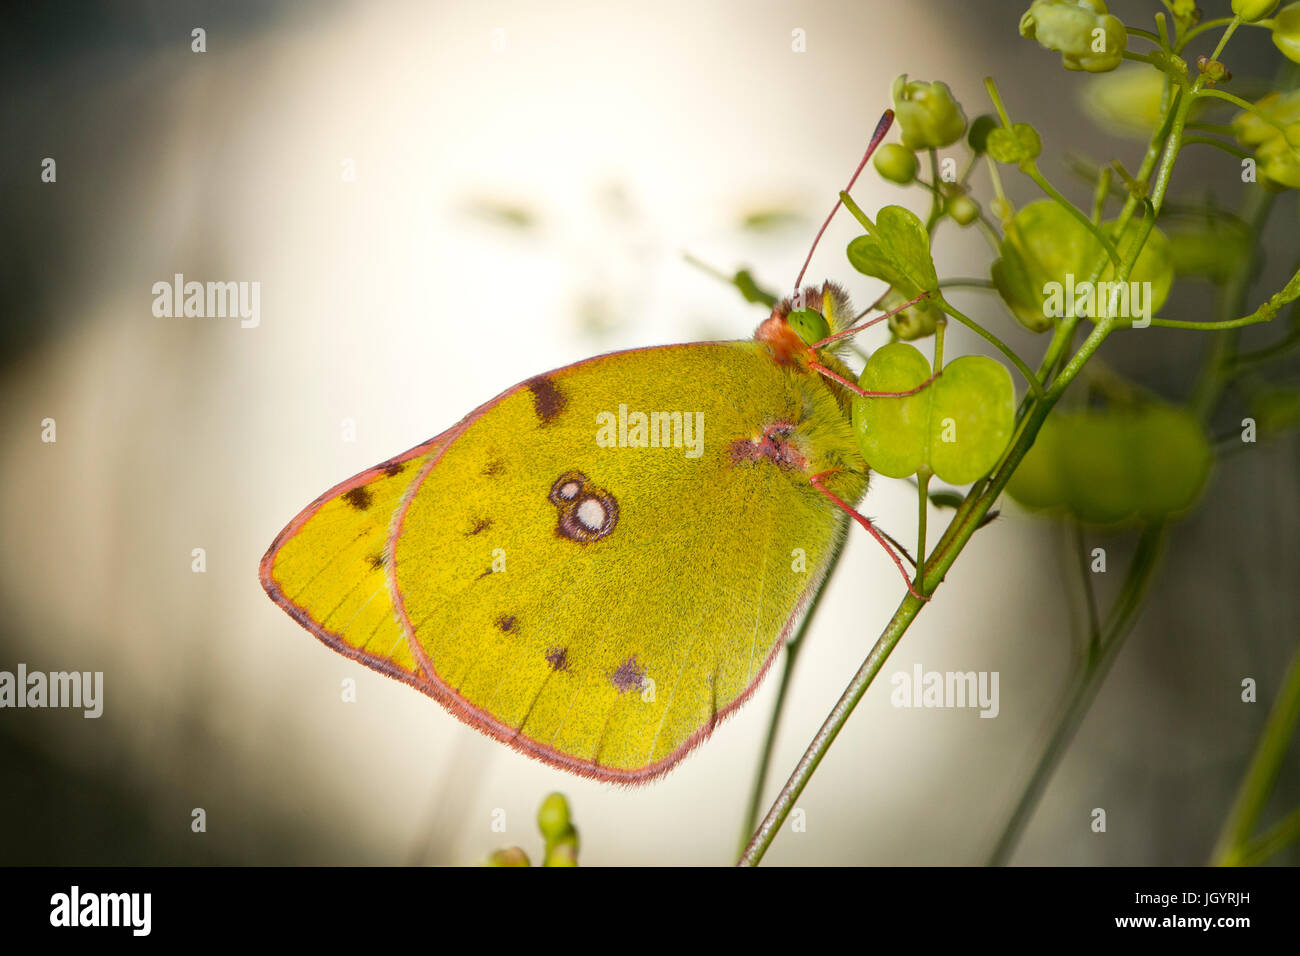 Papillon jaune assombrie (Colias croceus) adulte. Sur le Causse de Gramat, Lot, France. Mai. Photo Stock